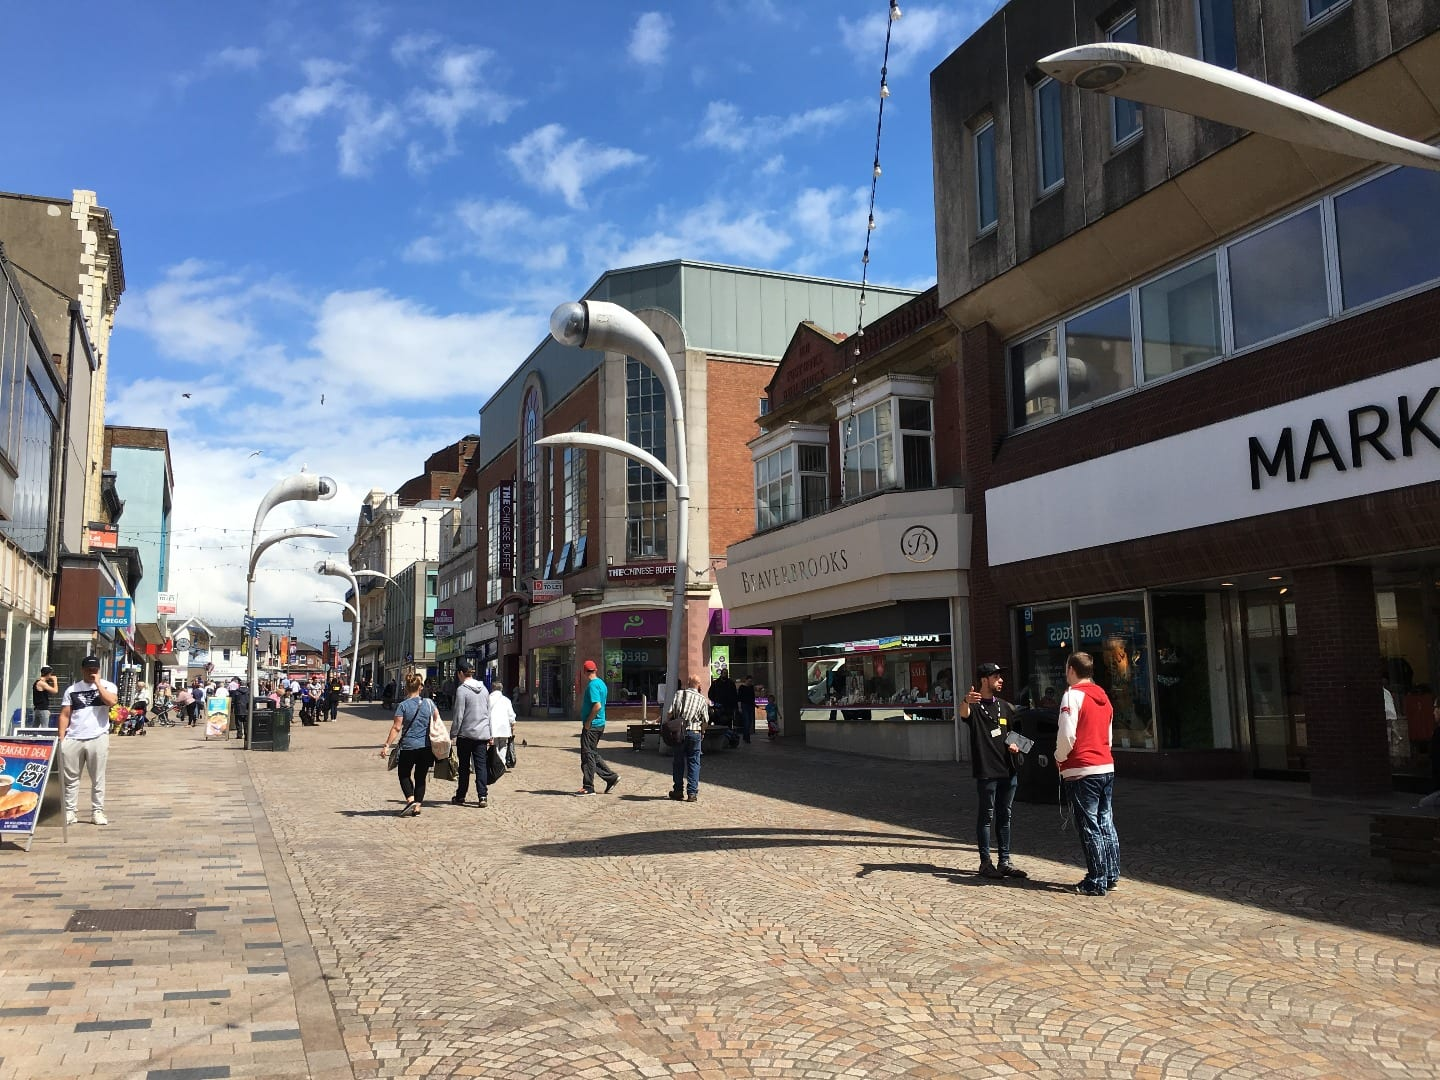 Church Street in Blackpool town centre, Marks and Spencer